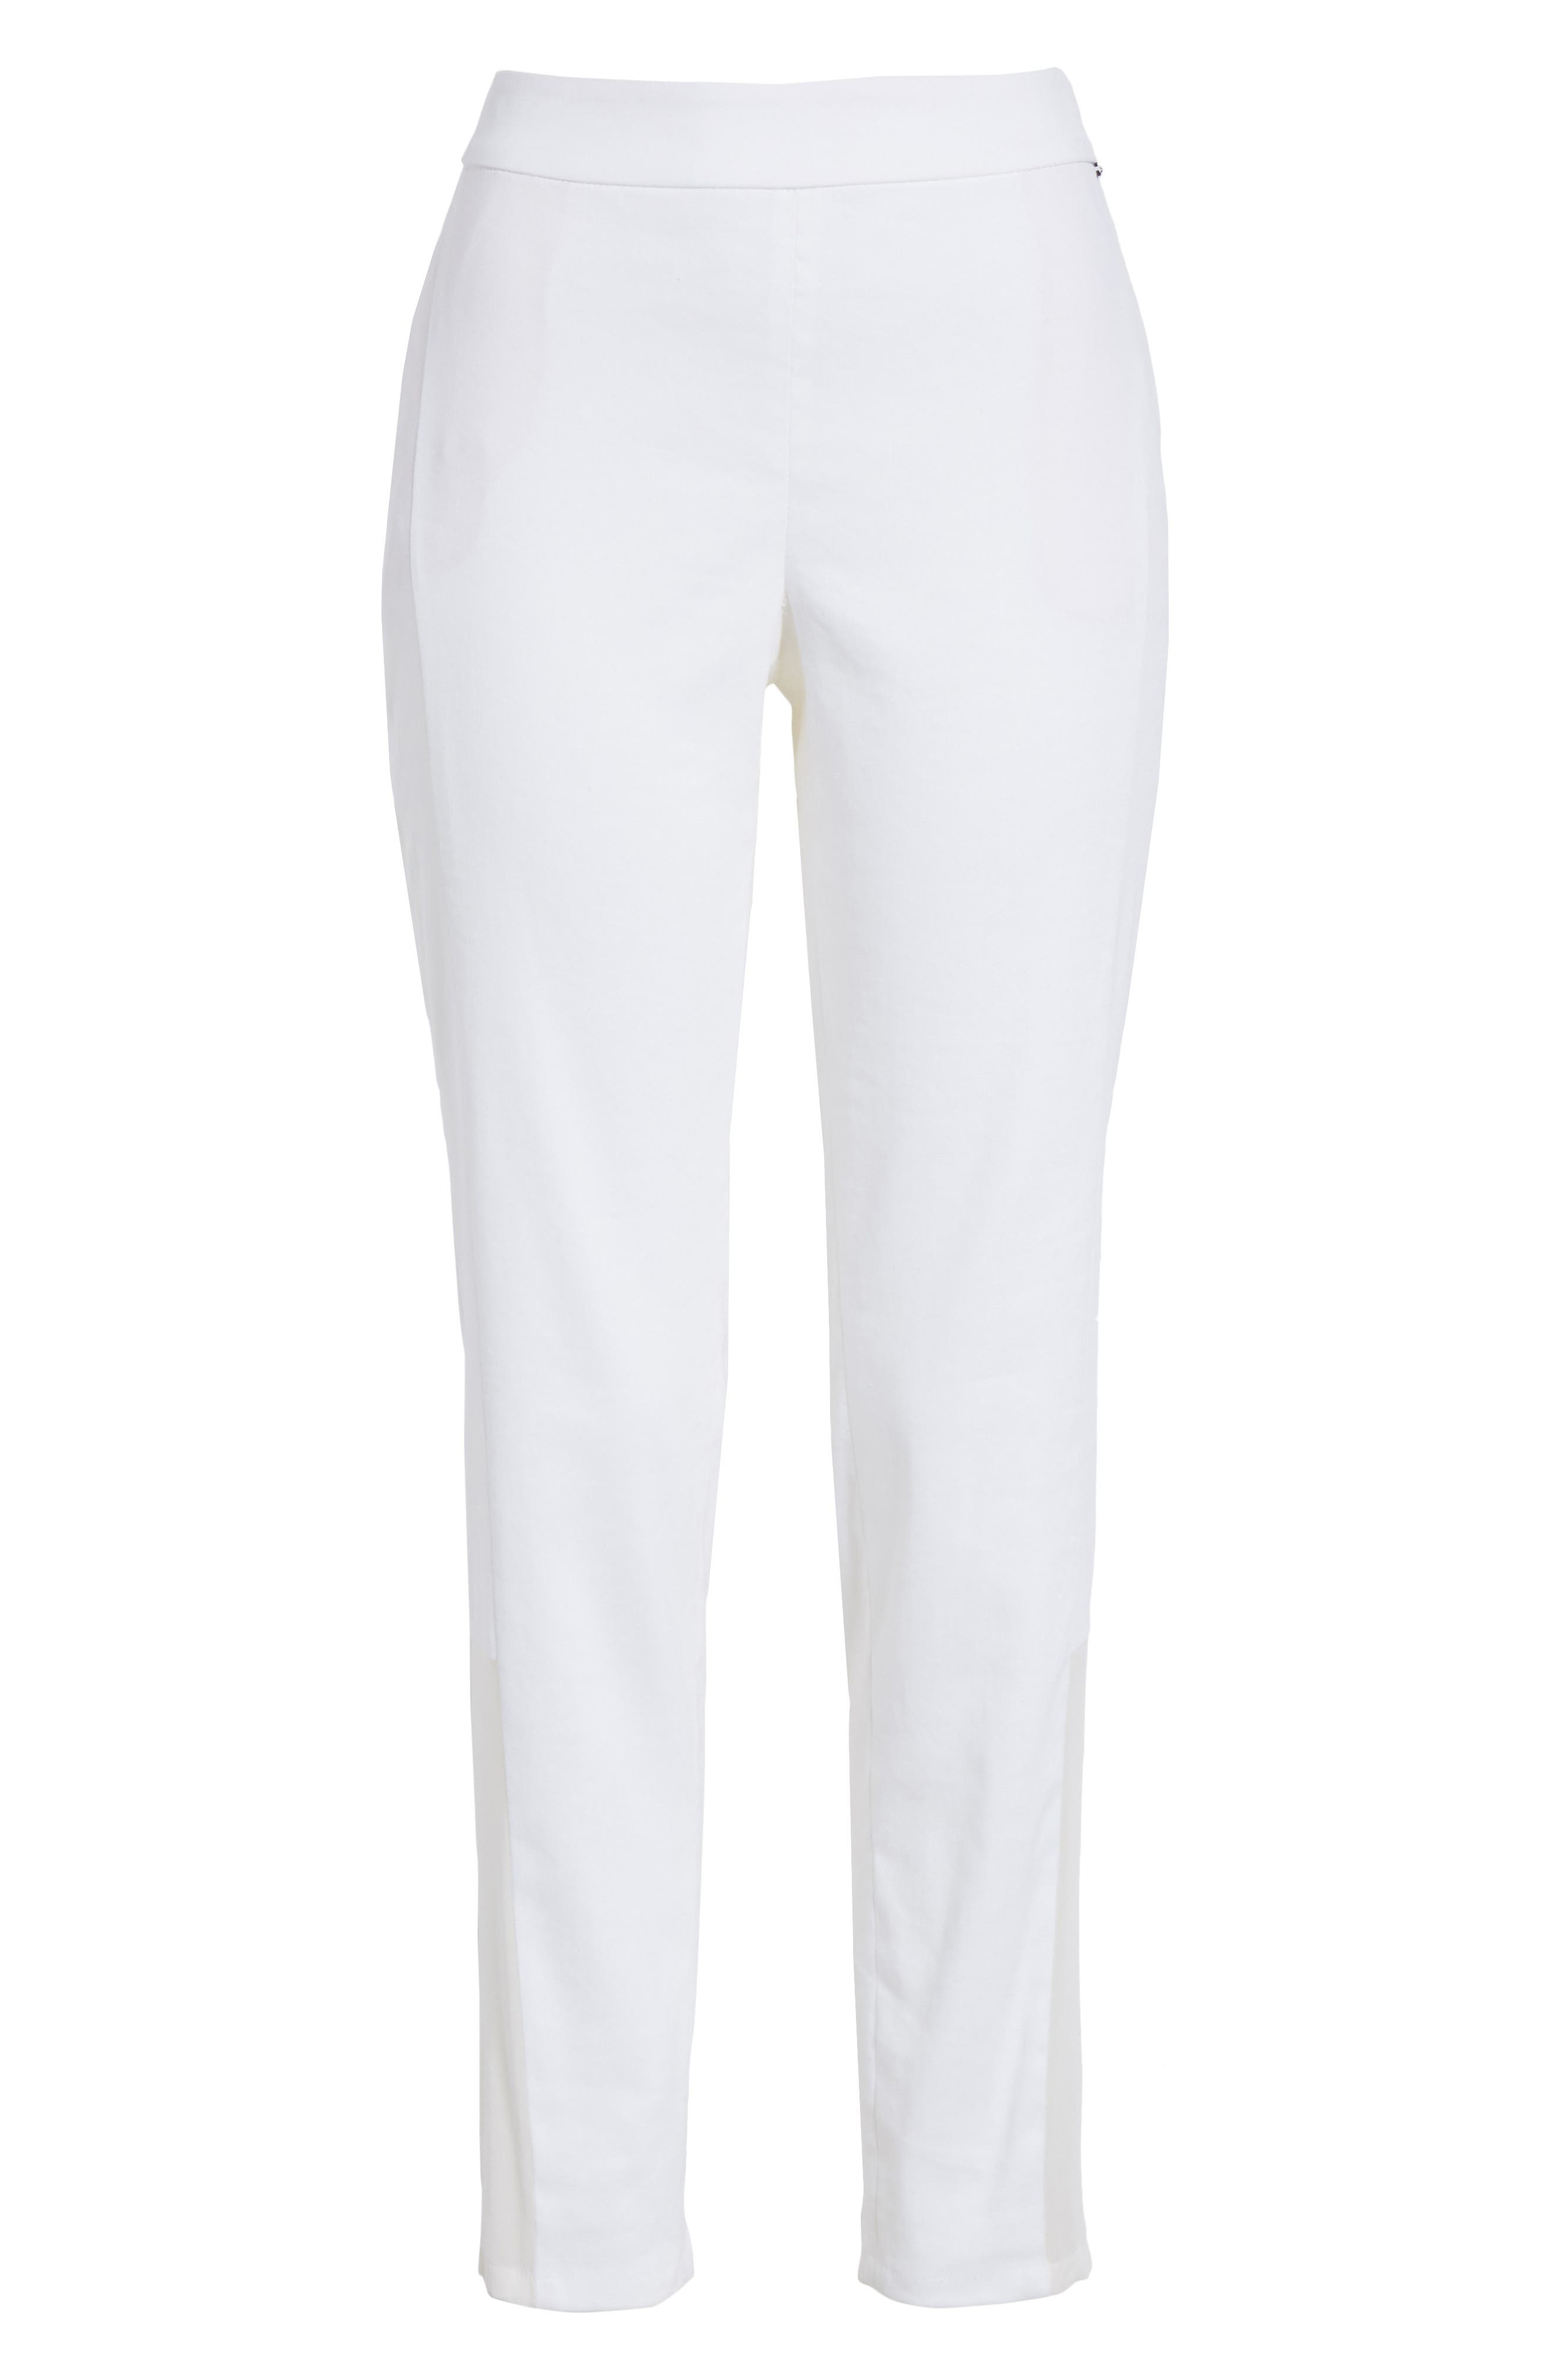 Sheer Inset Stretch Twill Pants,                             Alternate thumbnail 6, color,                             BIANCO